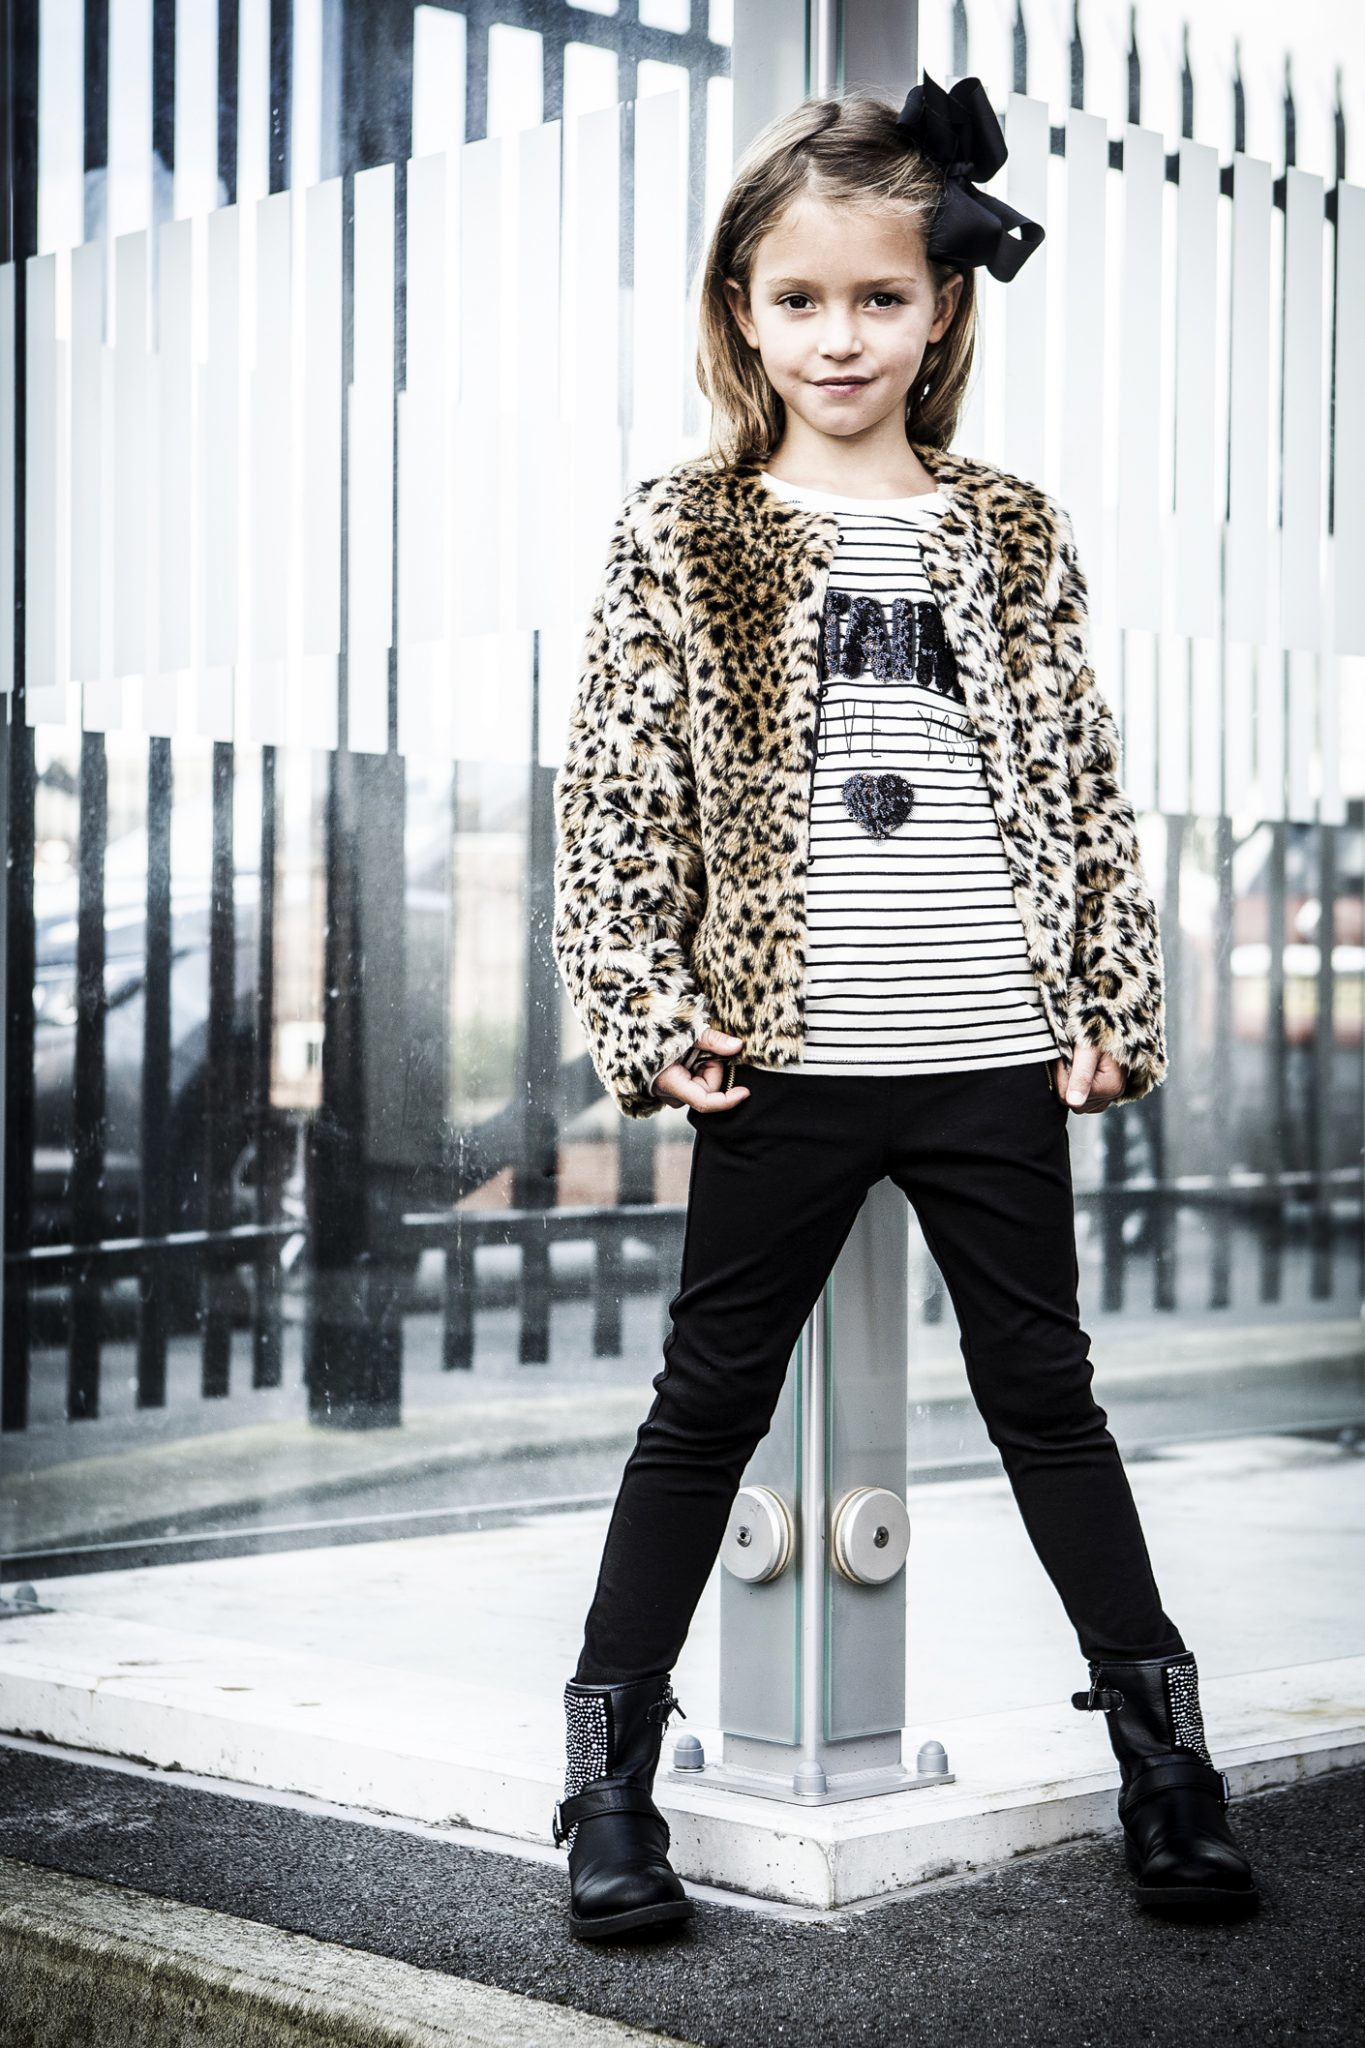 childrenswear-fashion-and-advertising-photography-in-manchester